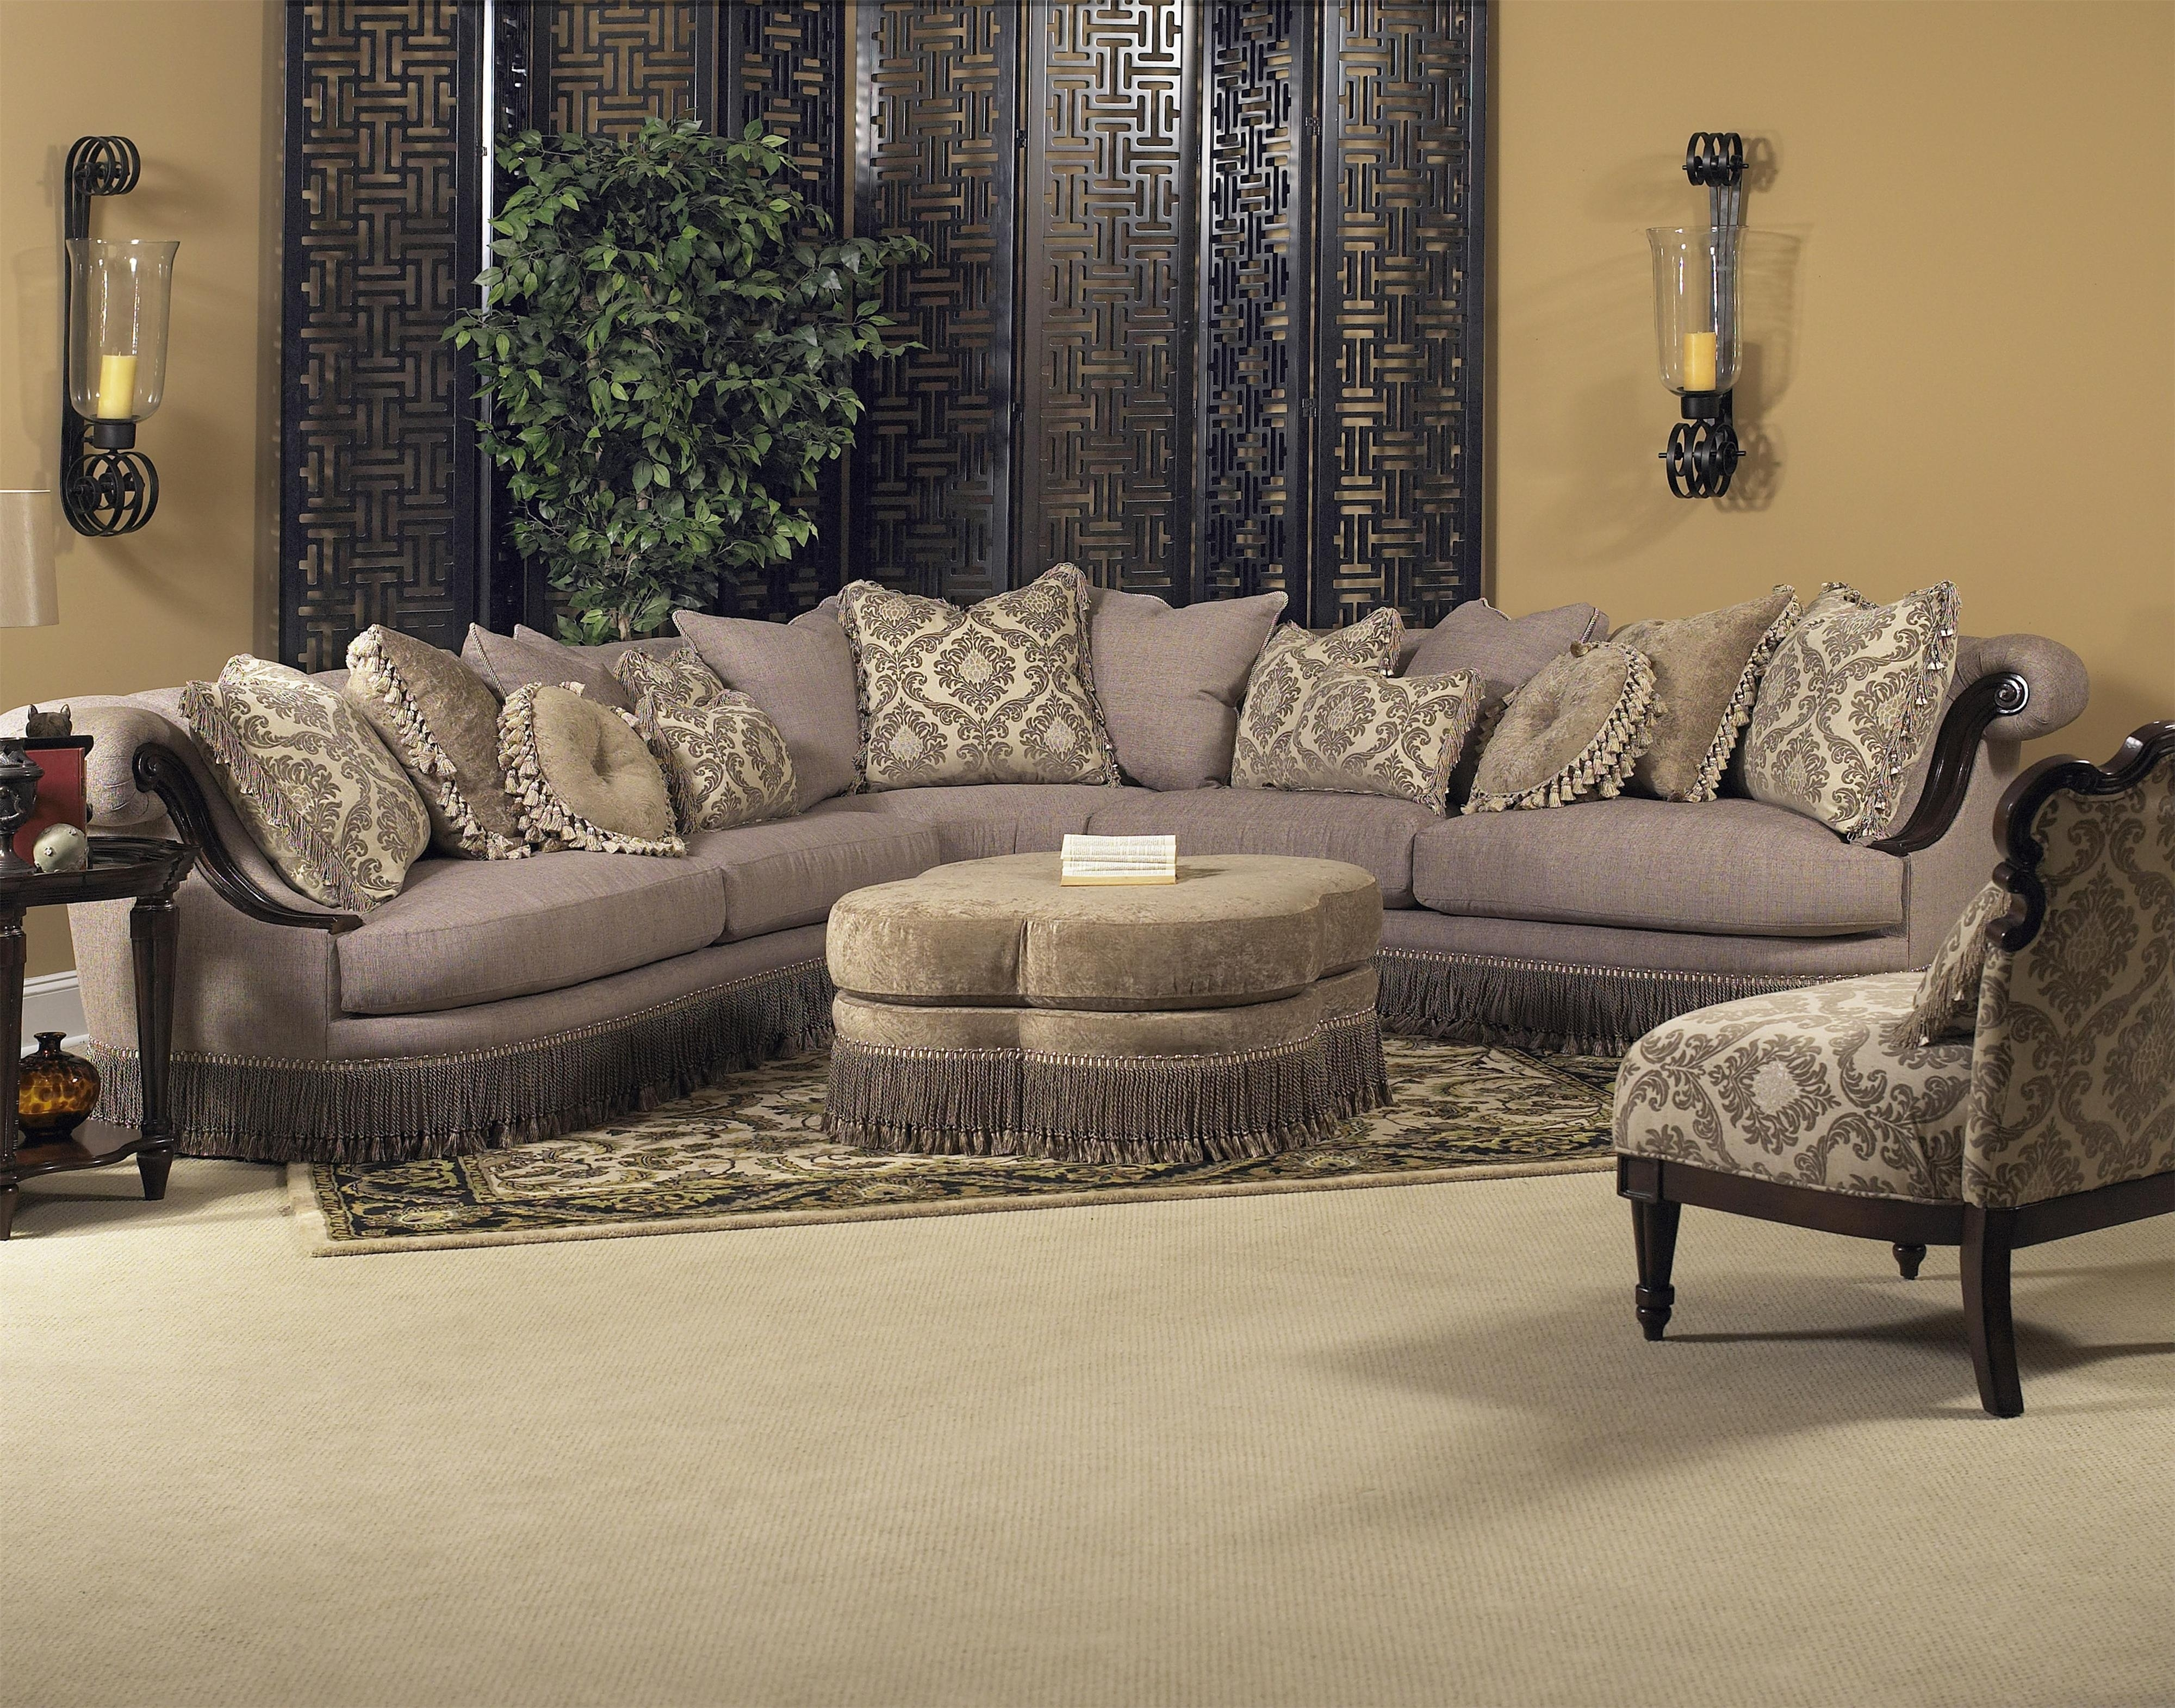 Classic Wellingsley Sectionalfairmont Designs Available At Royal Inside Sectional Sofas At Birmingham Al (View 3 of 15)